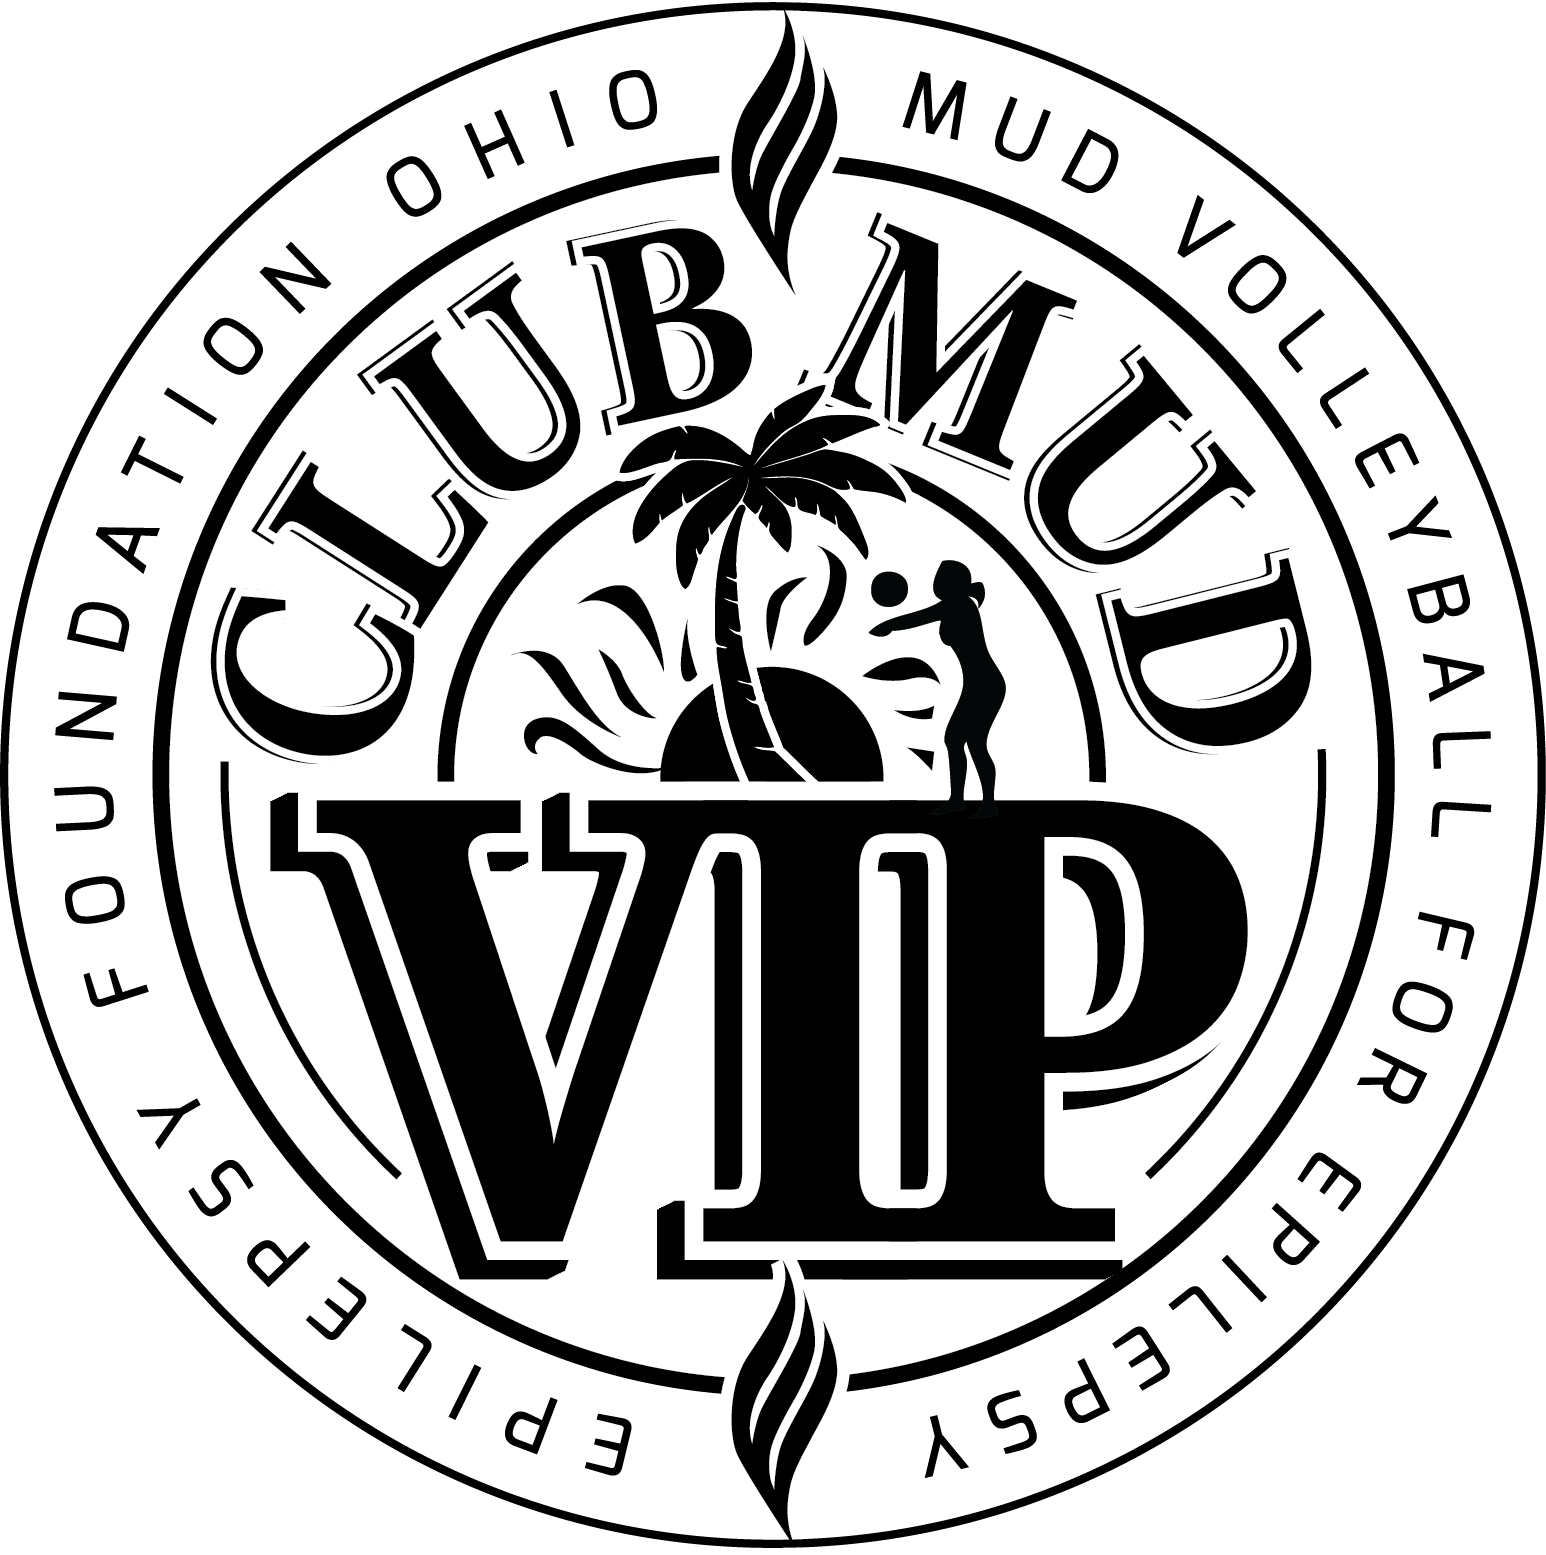 CLUB MUD VIP_Epilepsy Foundation Ohio_Logo_paths.png